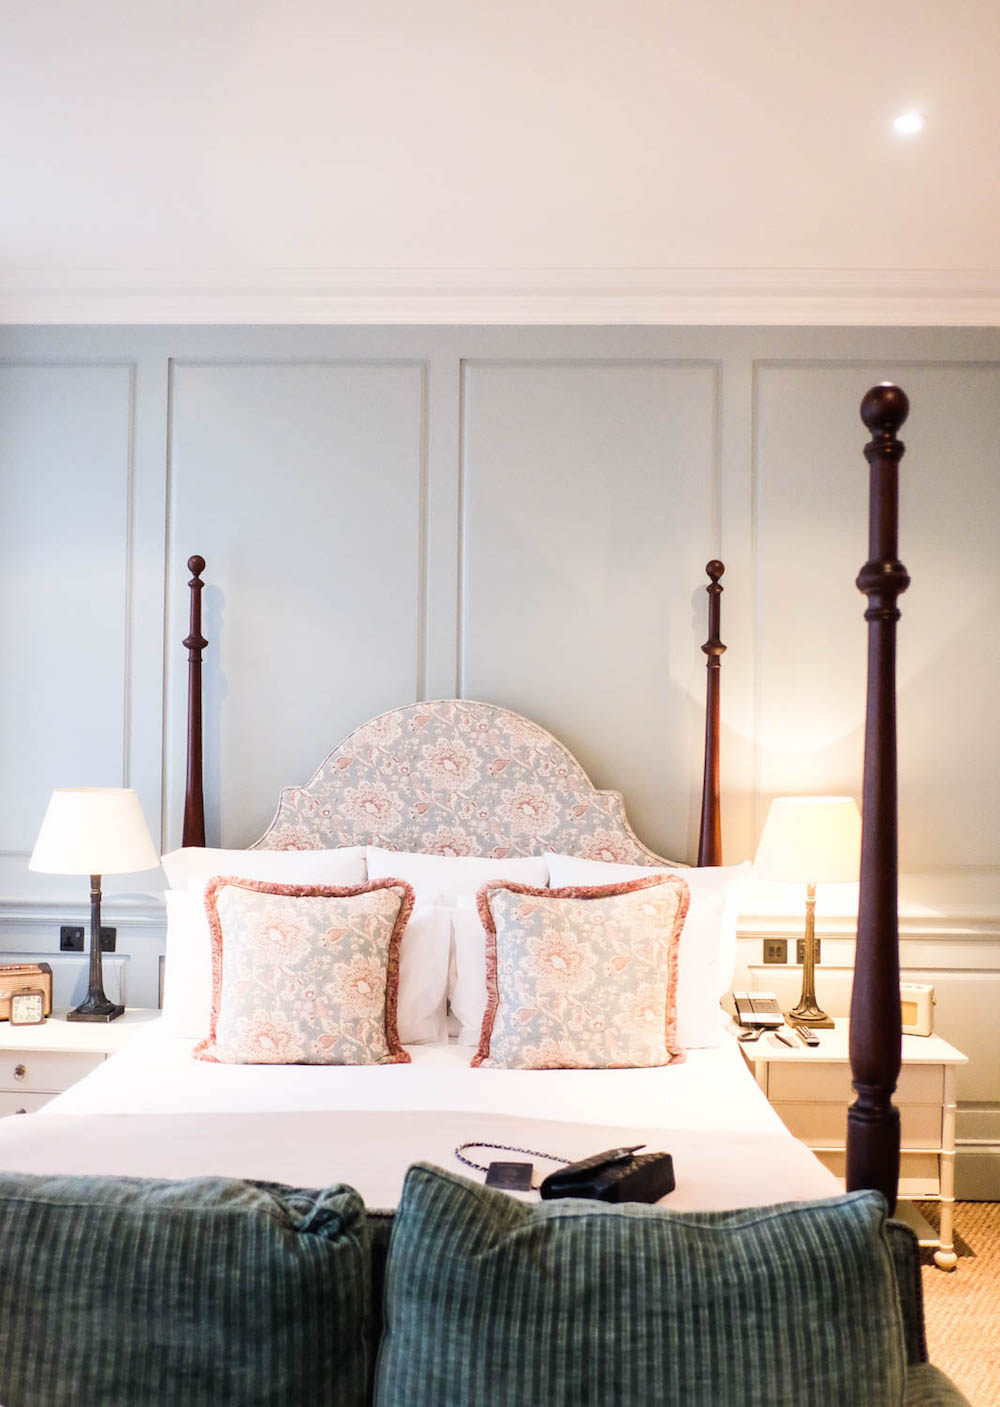 36 hours in soho | dean street townhouse - beautiful four poster bed